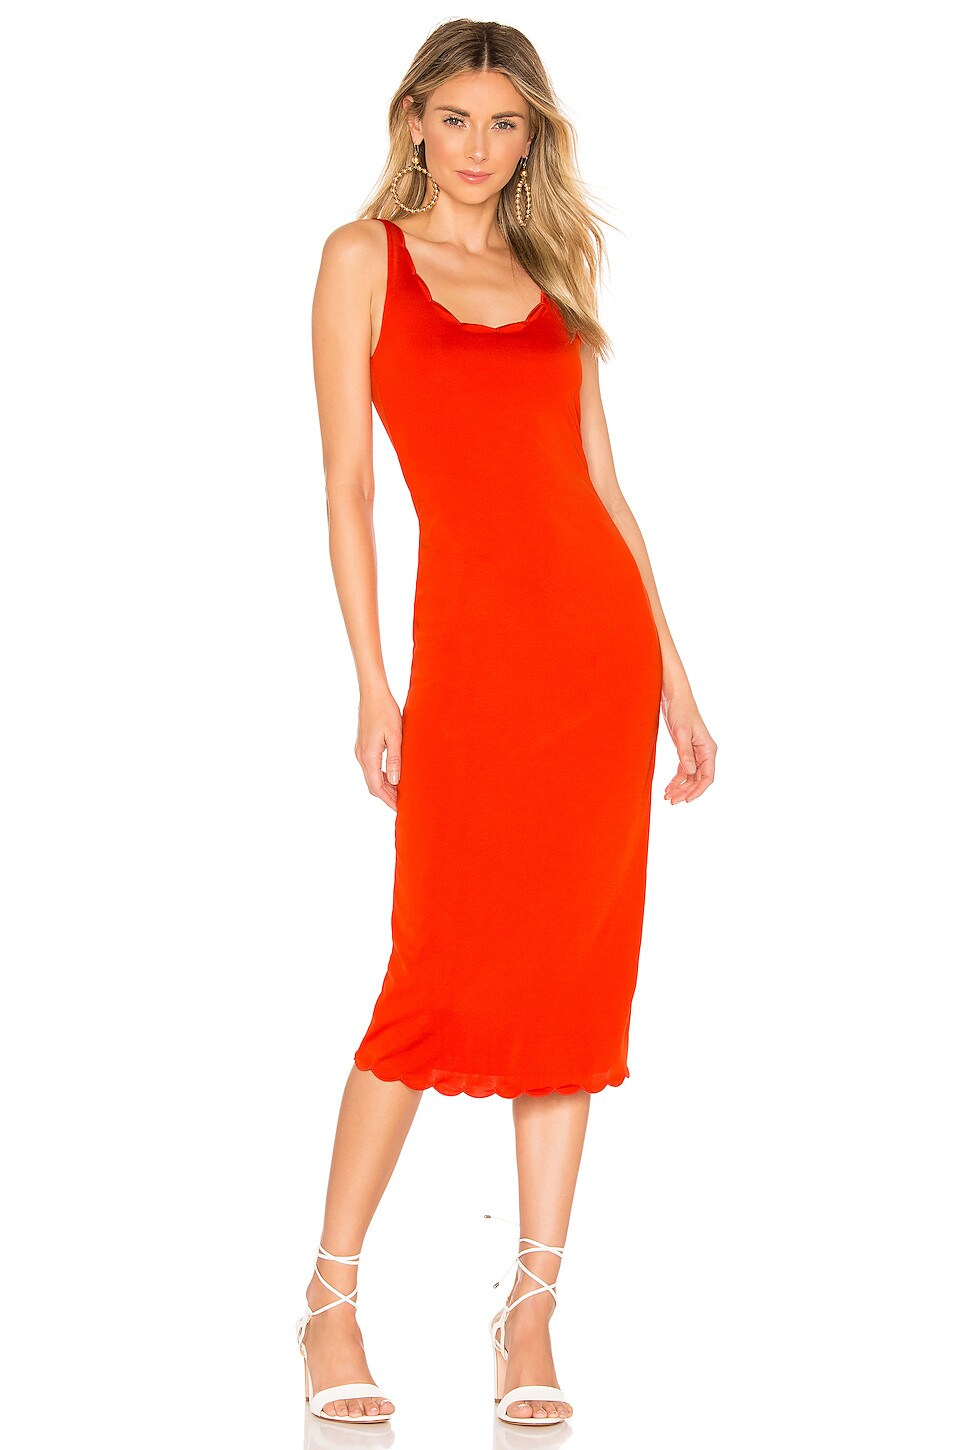 House of Harlow 1960 x REVOLVE Annet Dress in Red